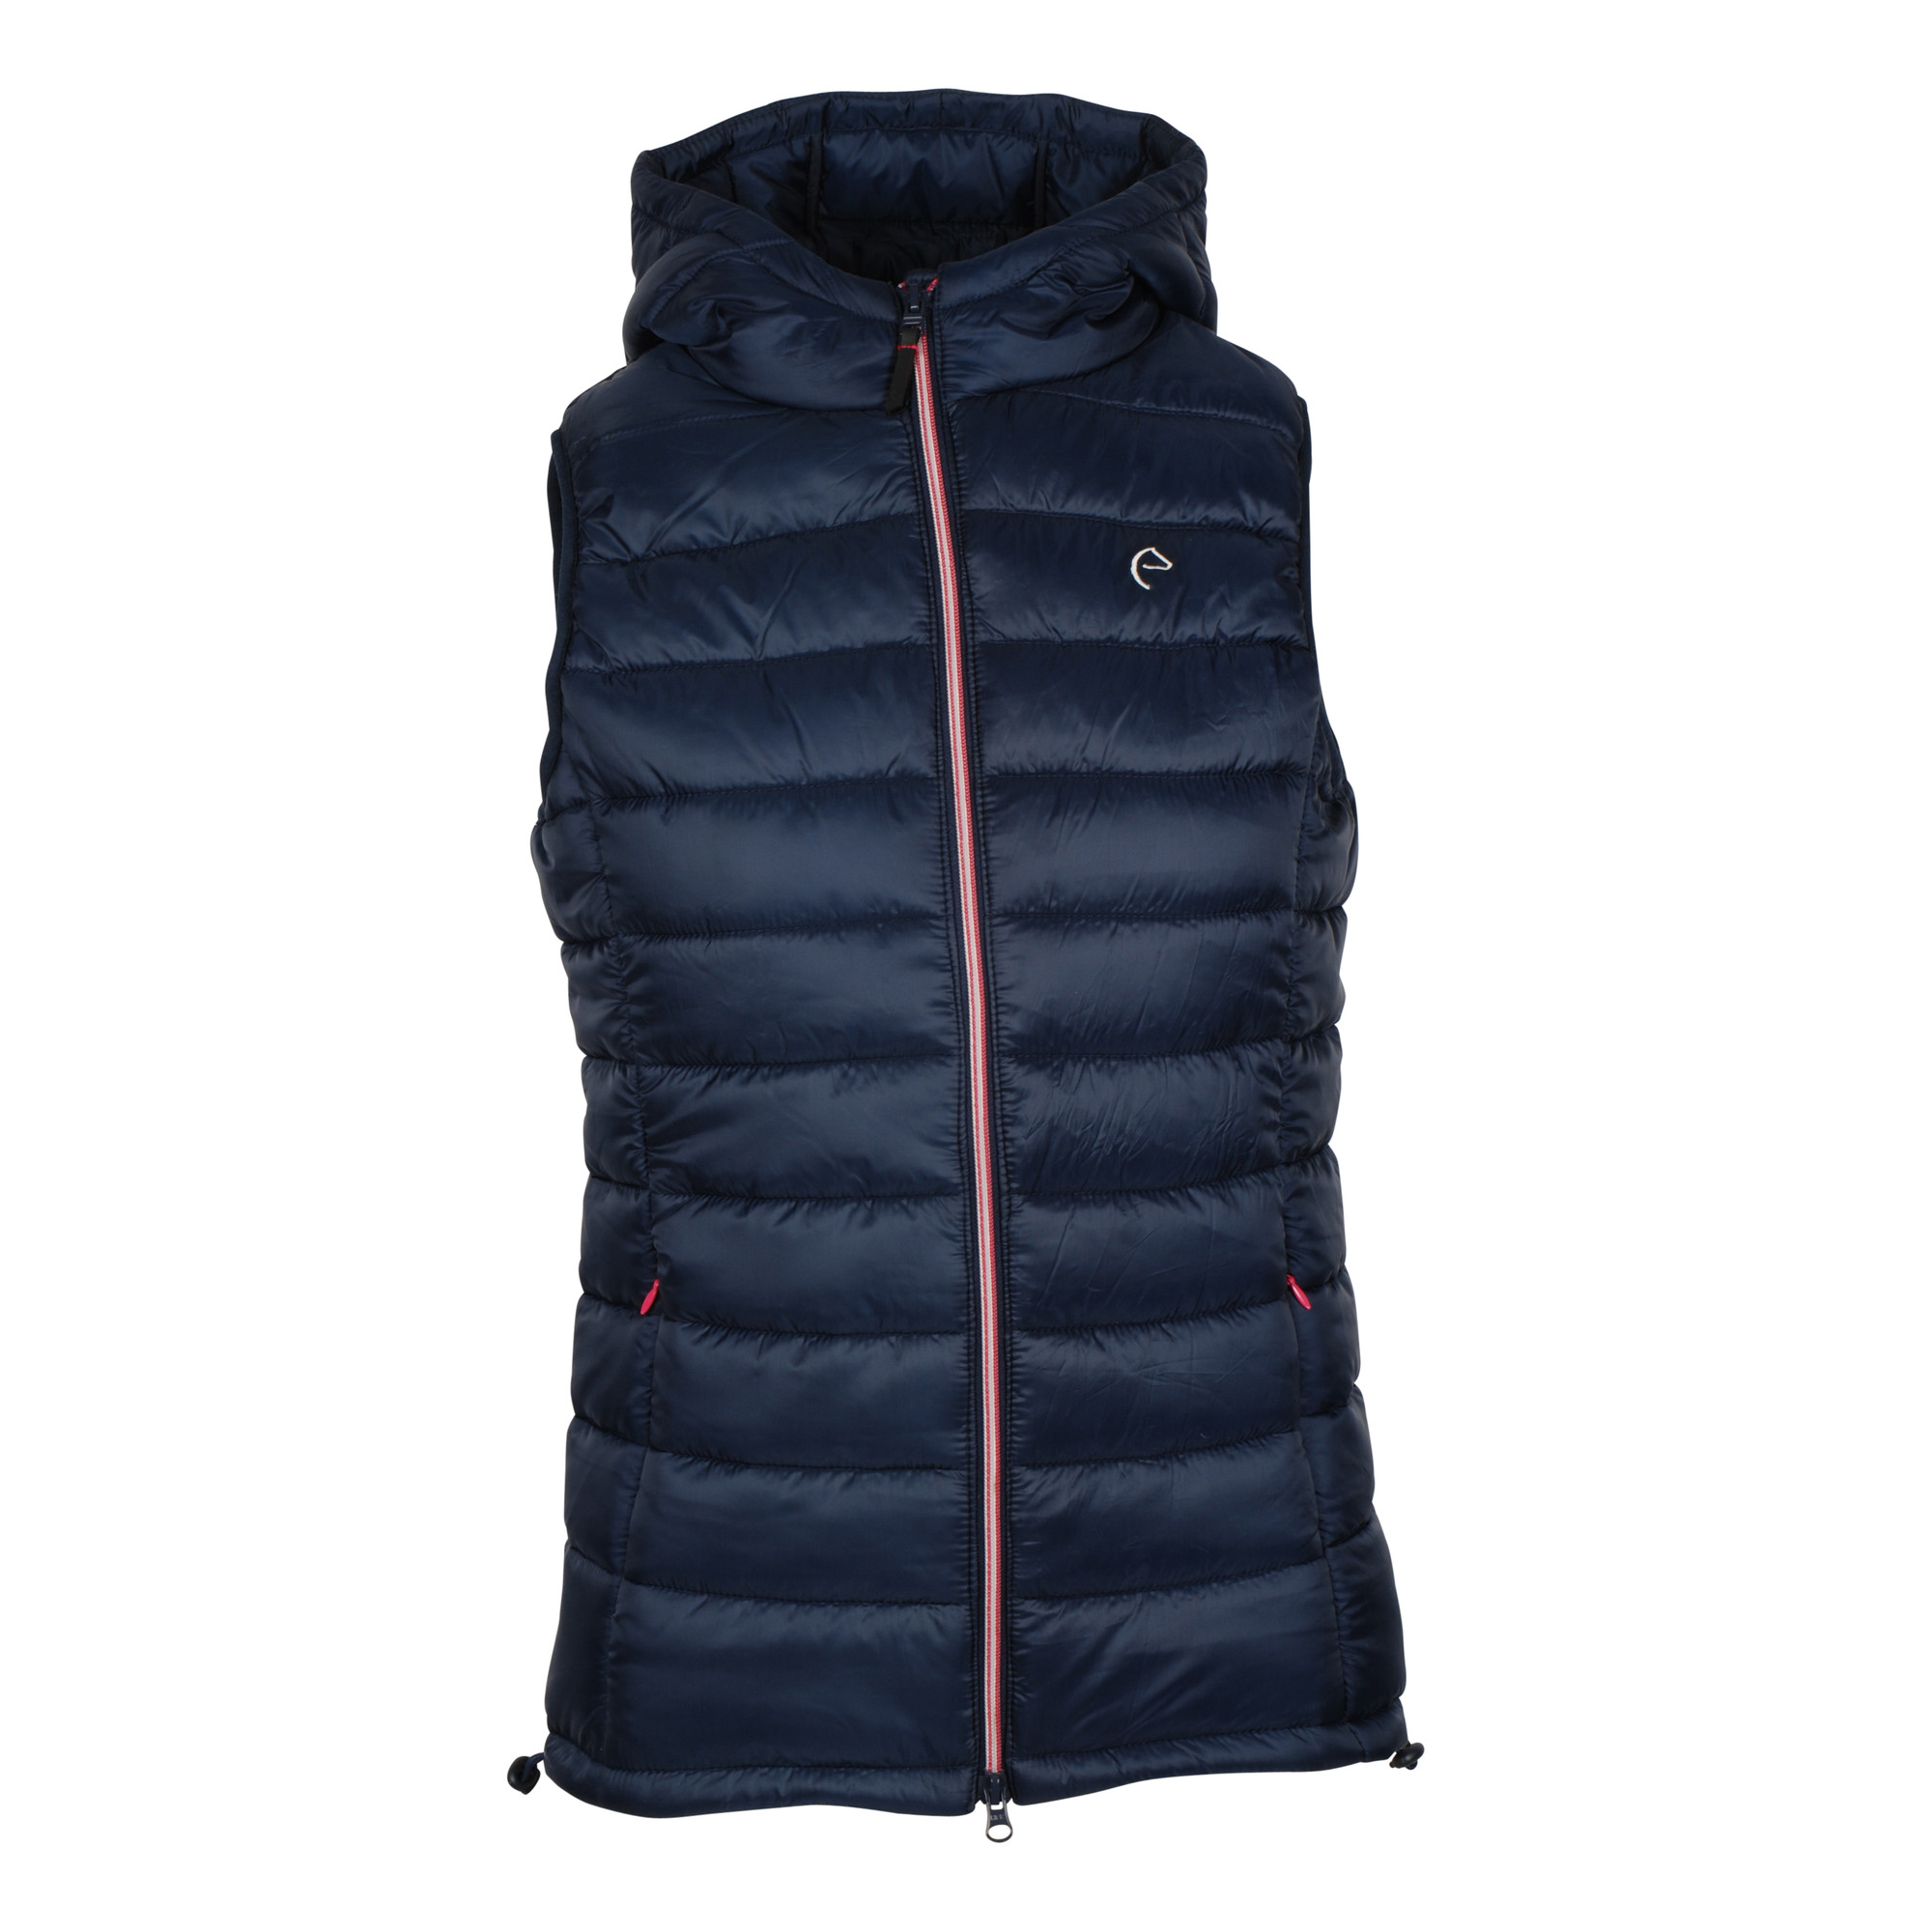 Equitheme Padded bodywarmer donkerblauw maat:s